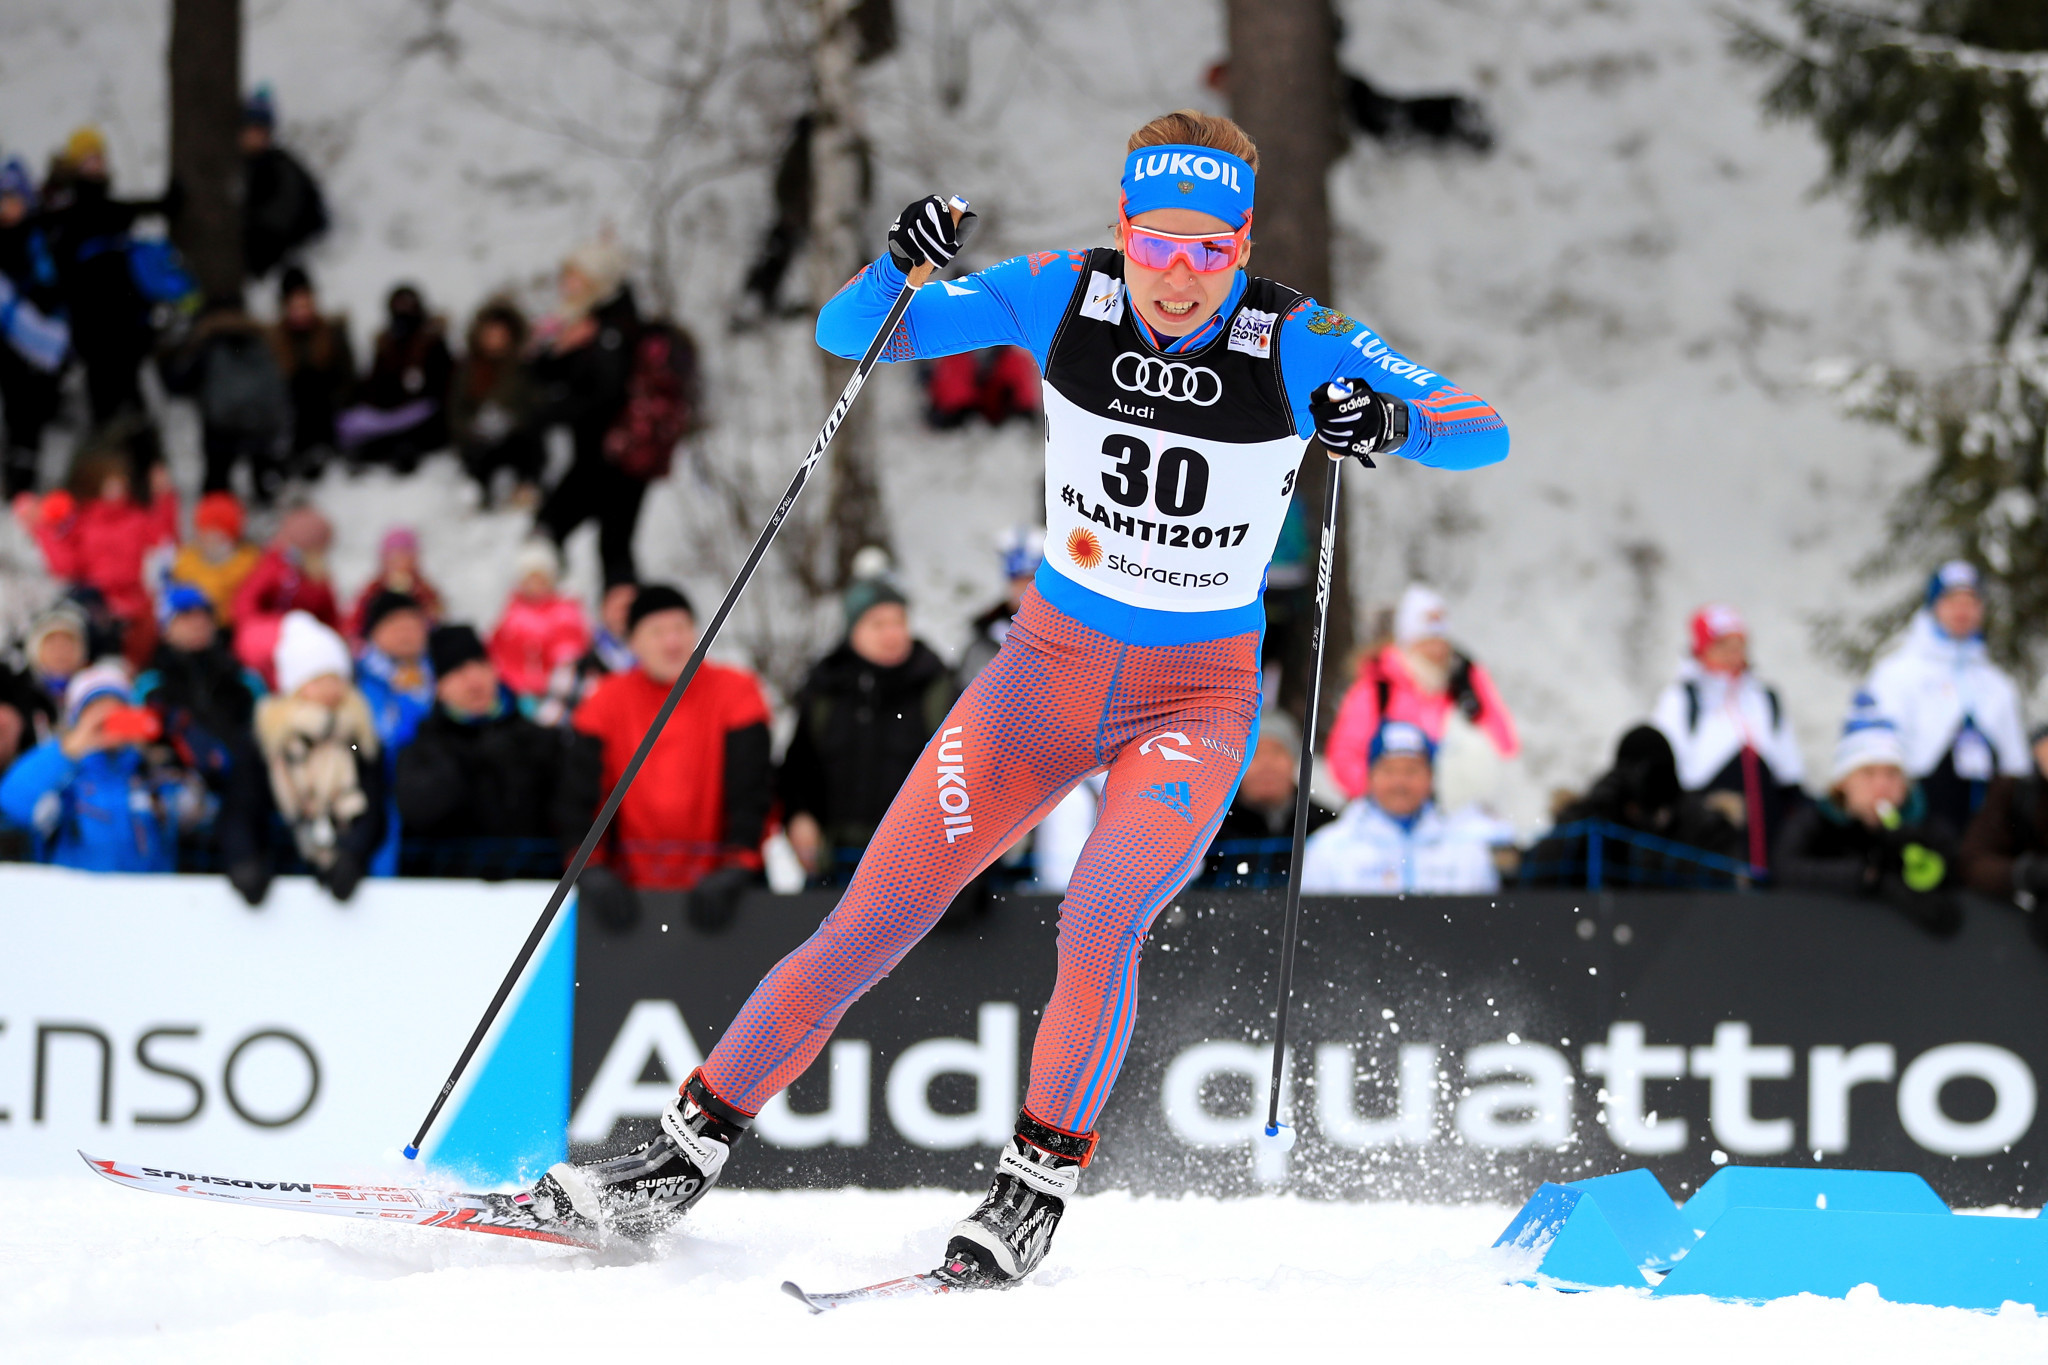 Russian cross-country skier Polina Kovaleva is set to have her suspension reduced by RUSADA ©Getty Images